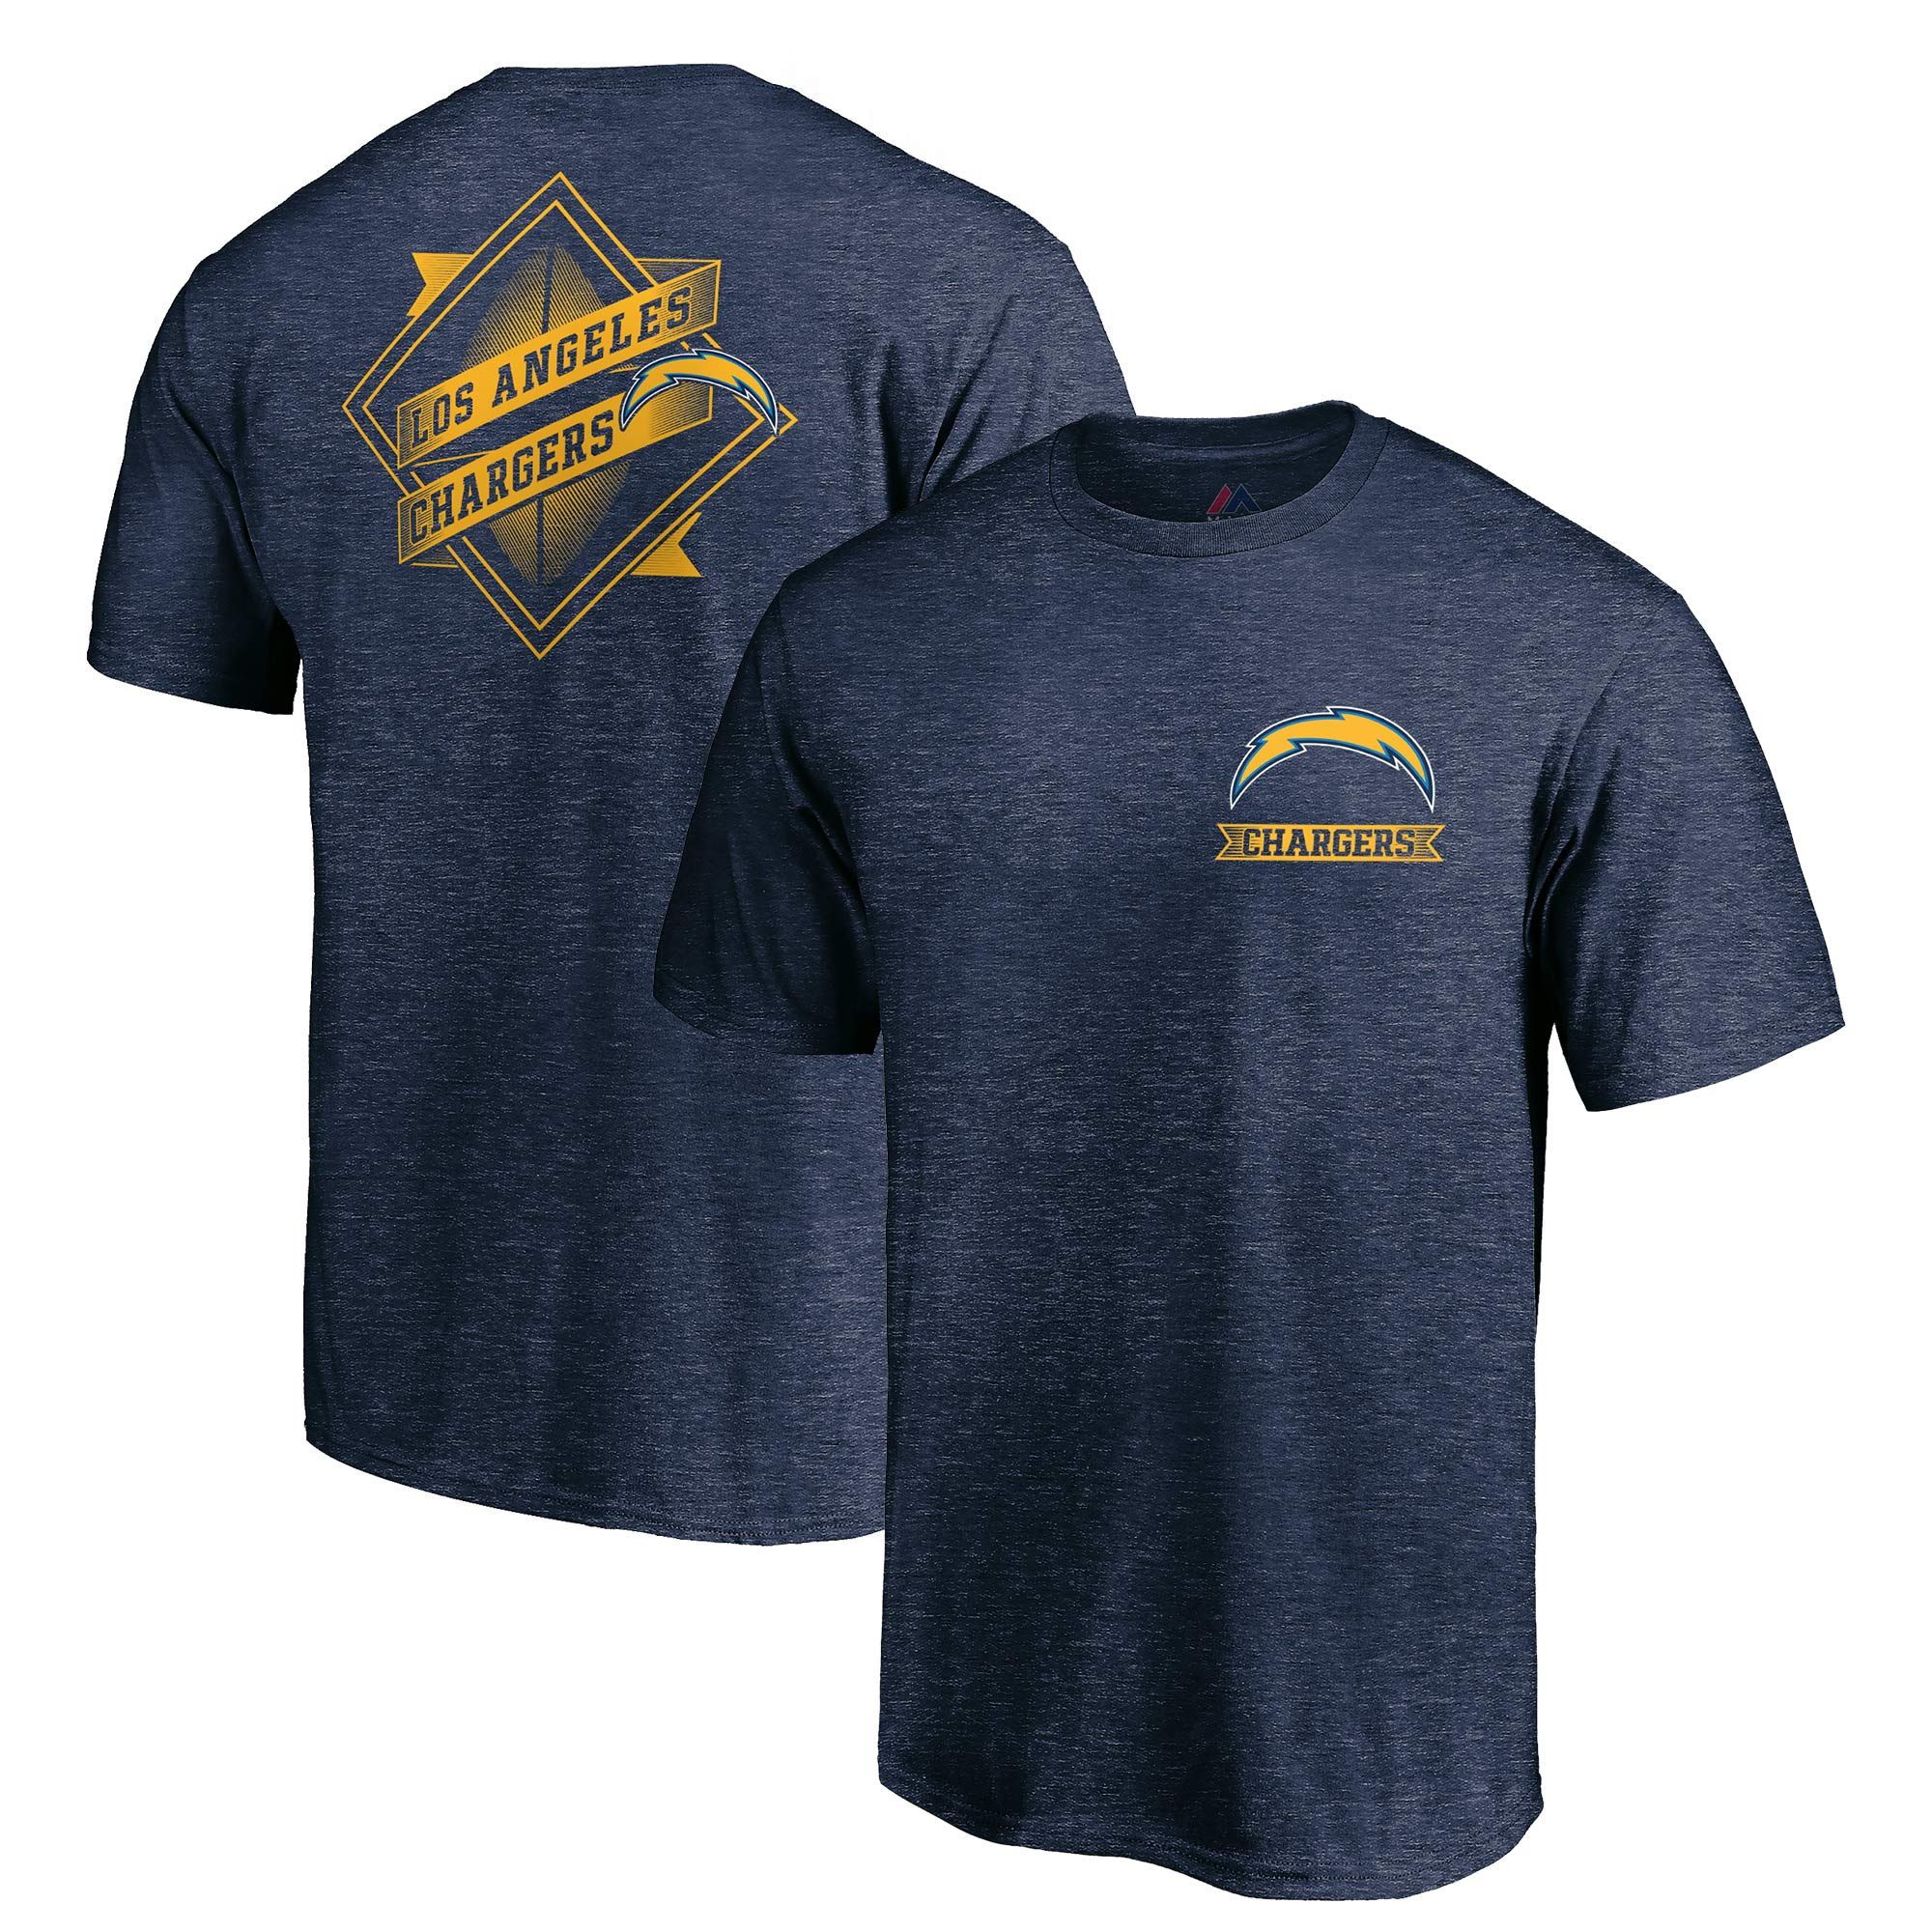 Los Angeles Chargers Majestic Iconic Diamond Scroll T-Shirt - Heathered Navy